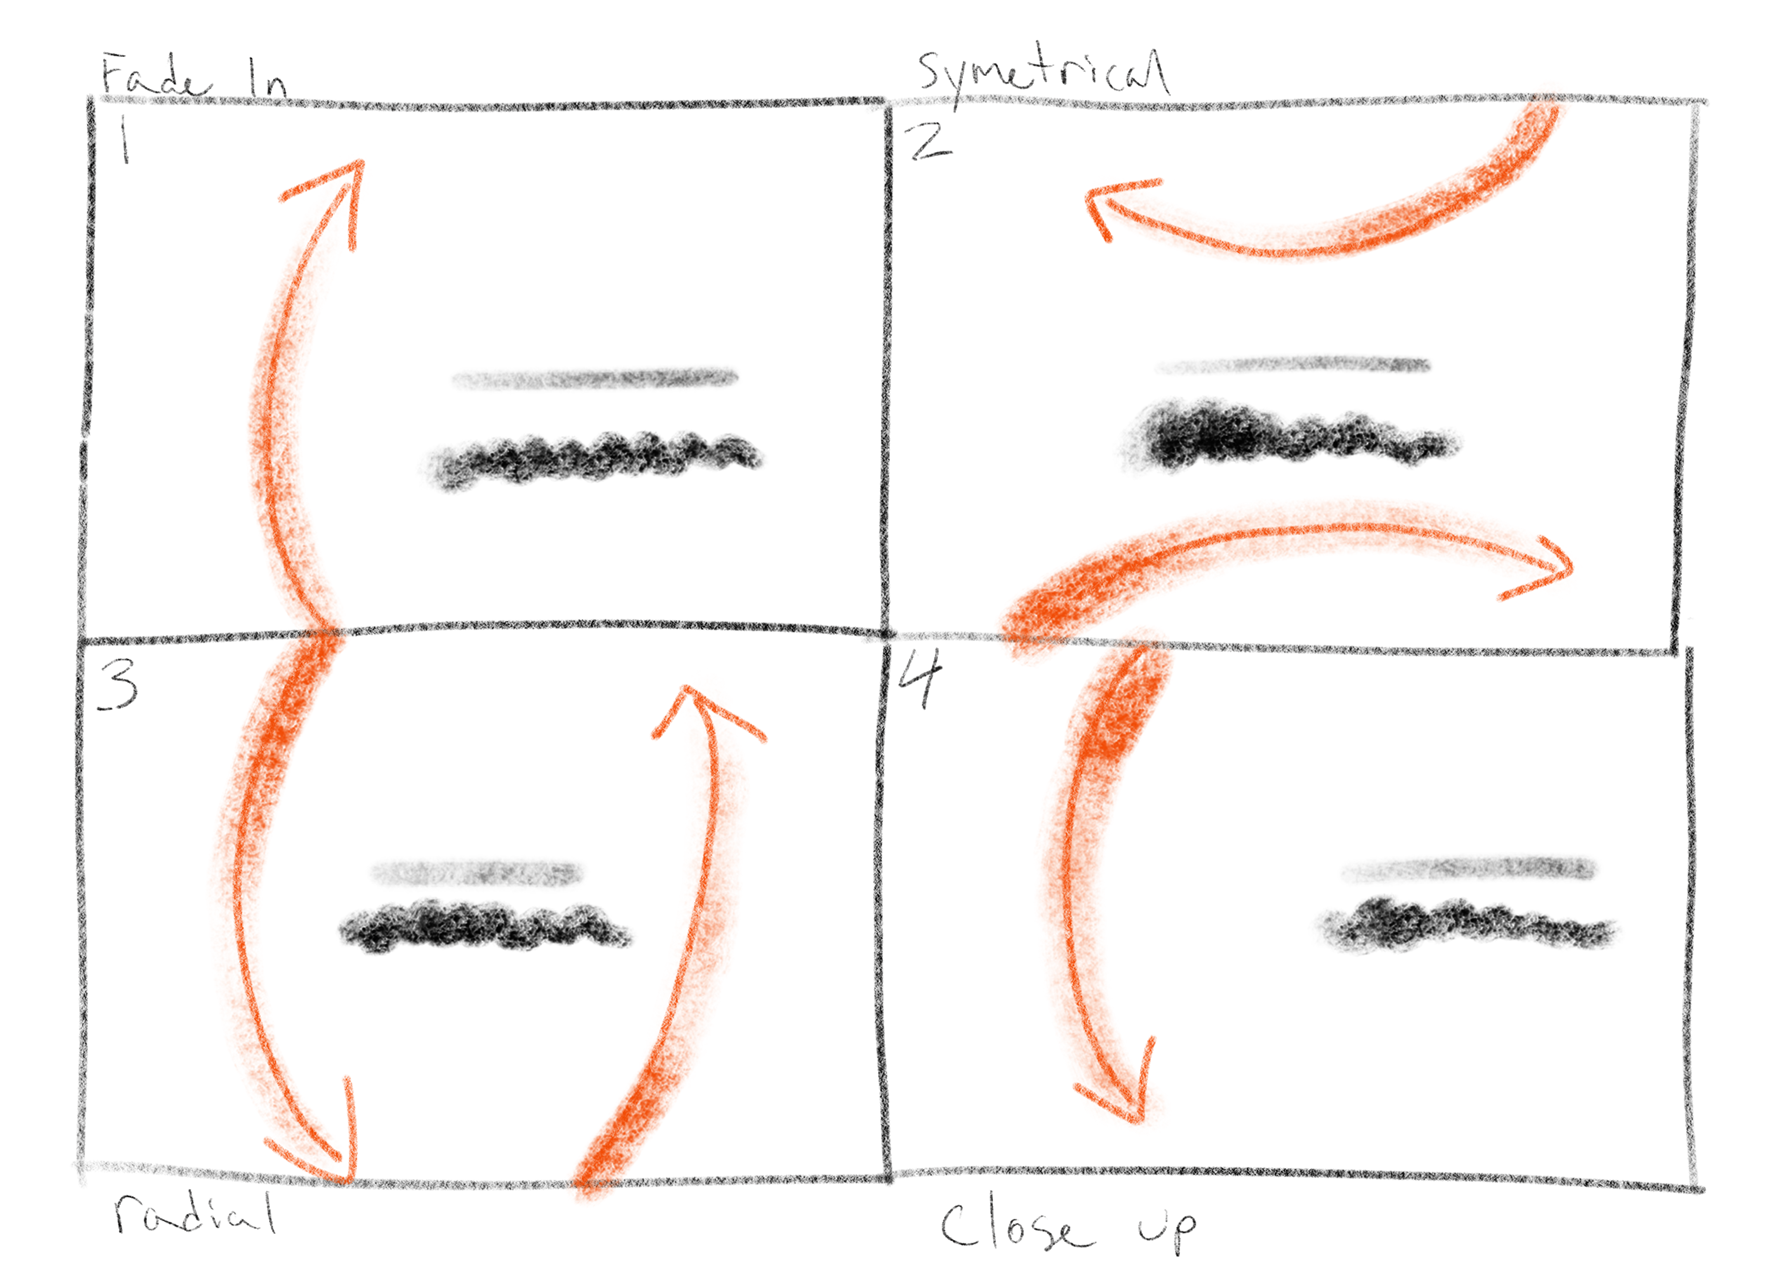 Sketching storyboards helped to plan composition and movement prior to computer animation.